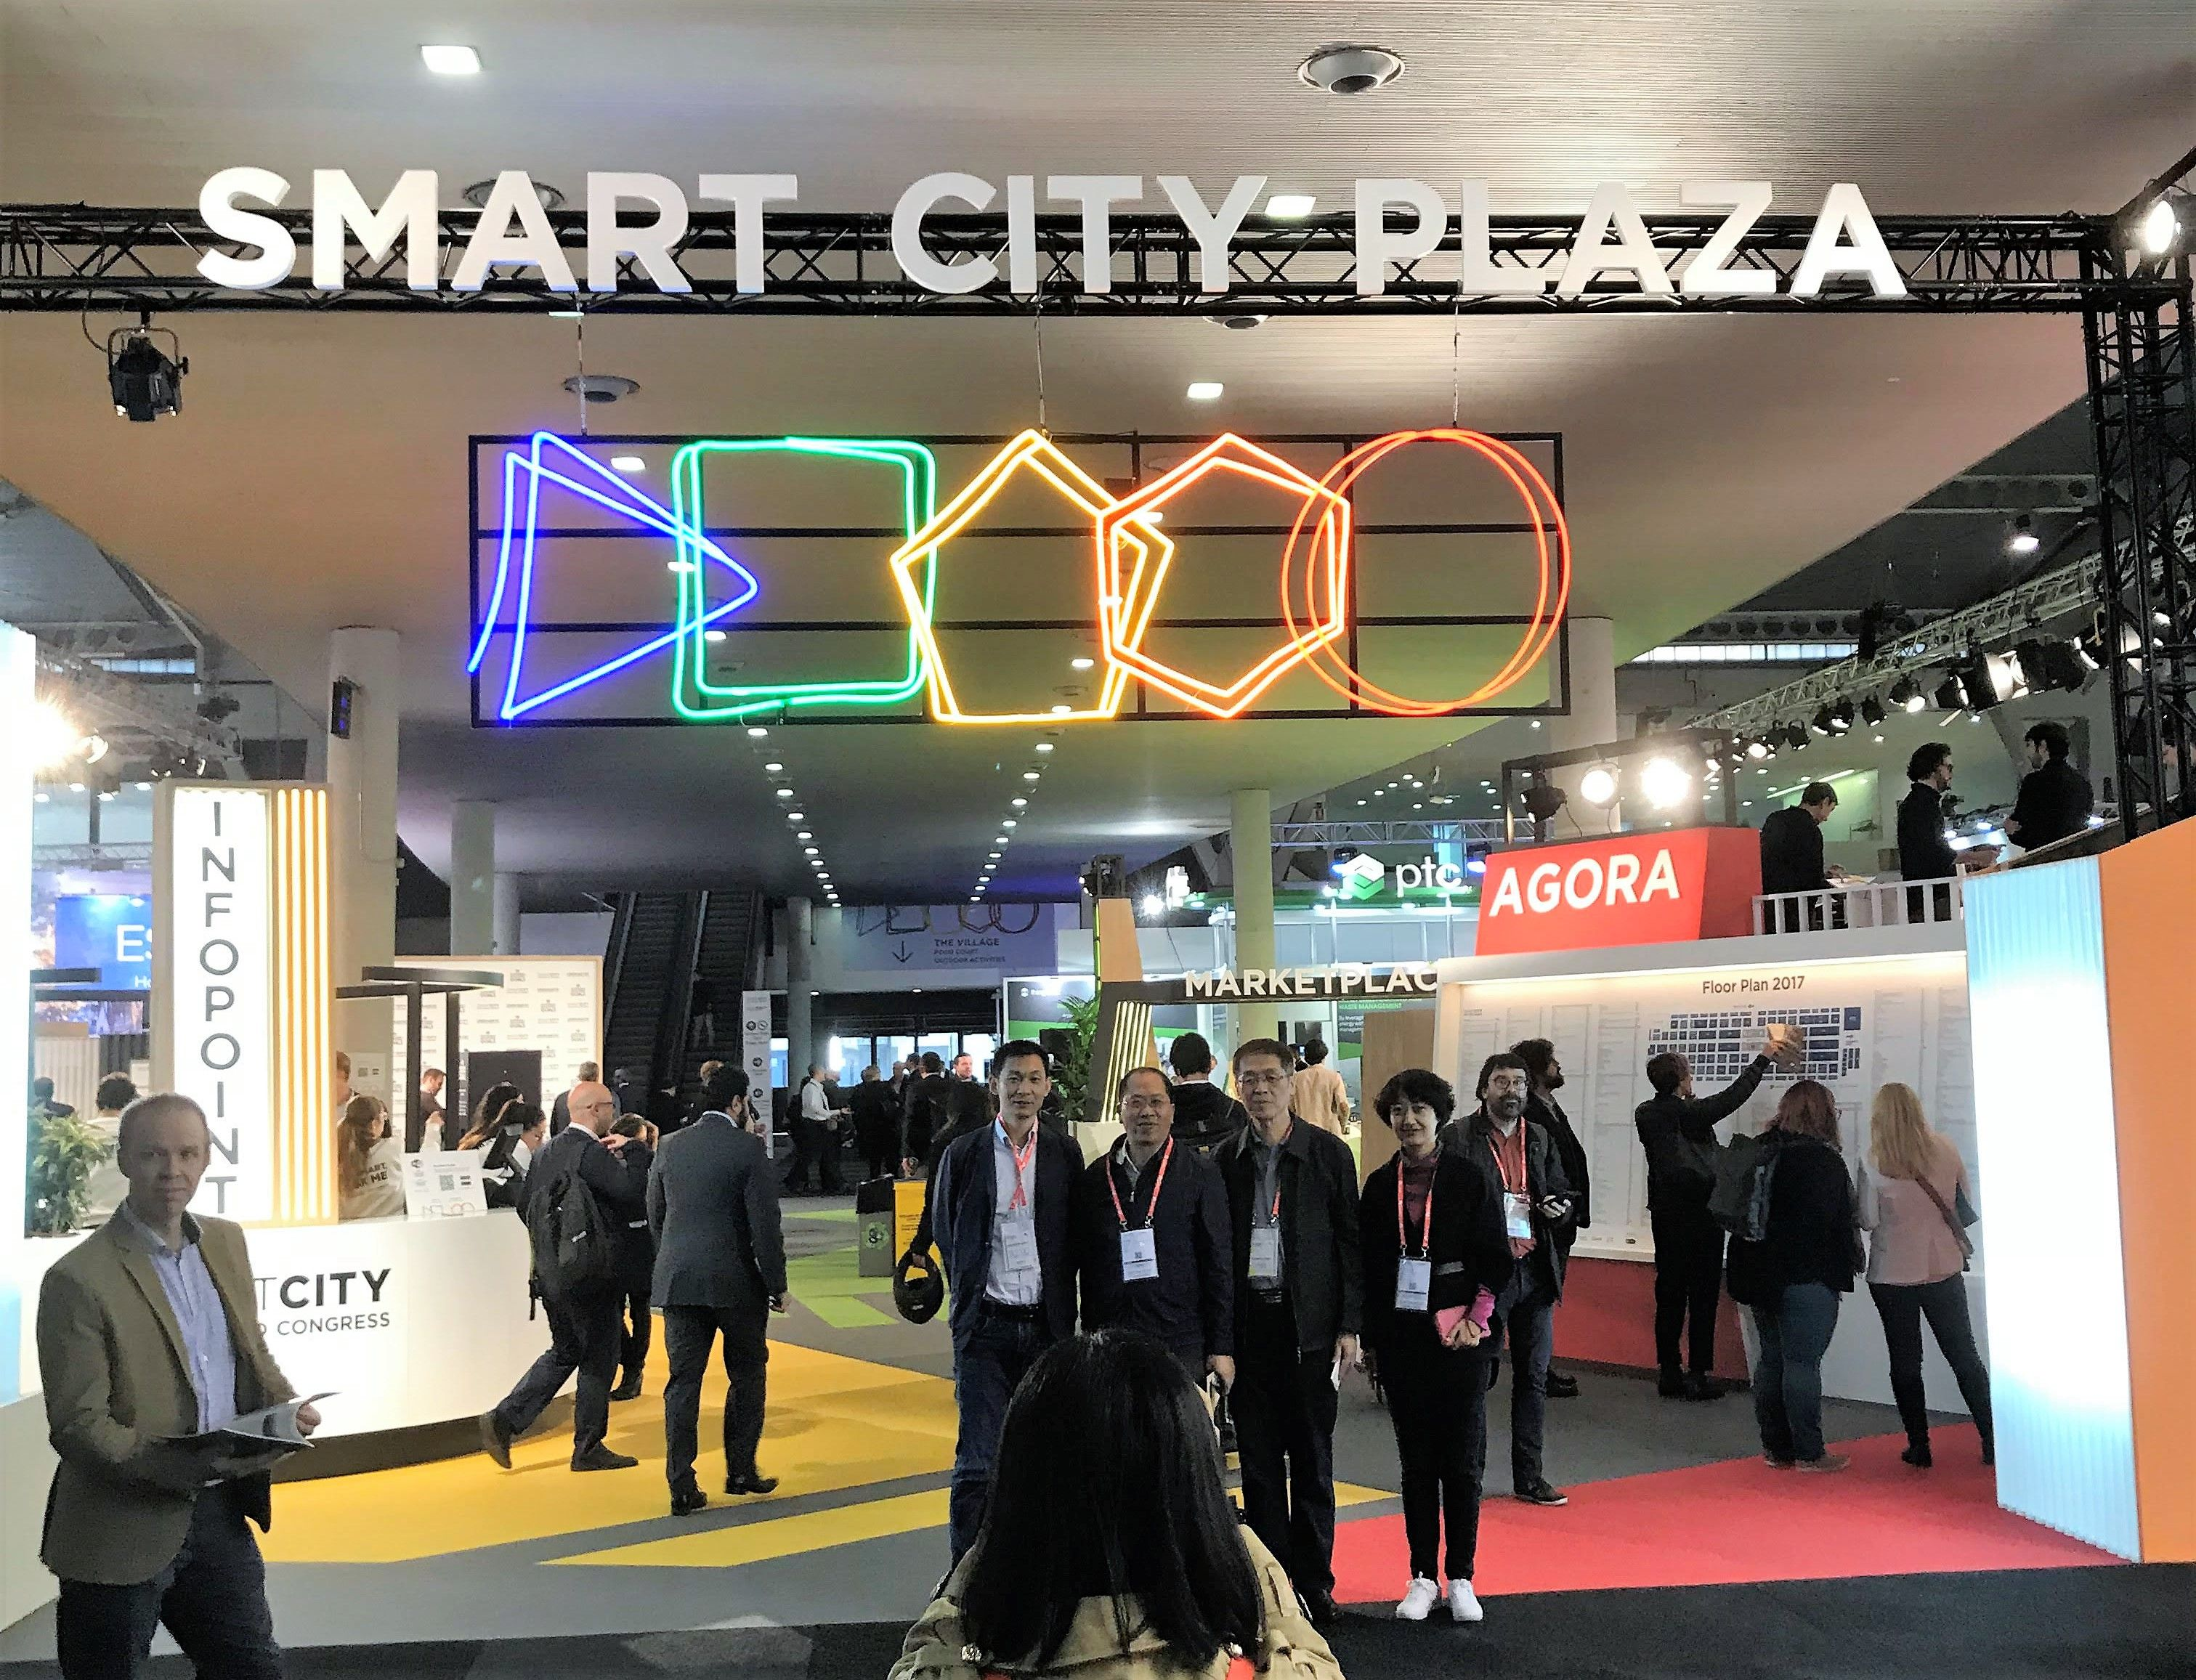 Odoo BHC SmartCities